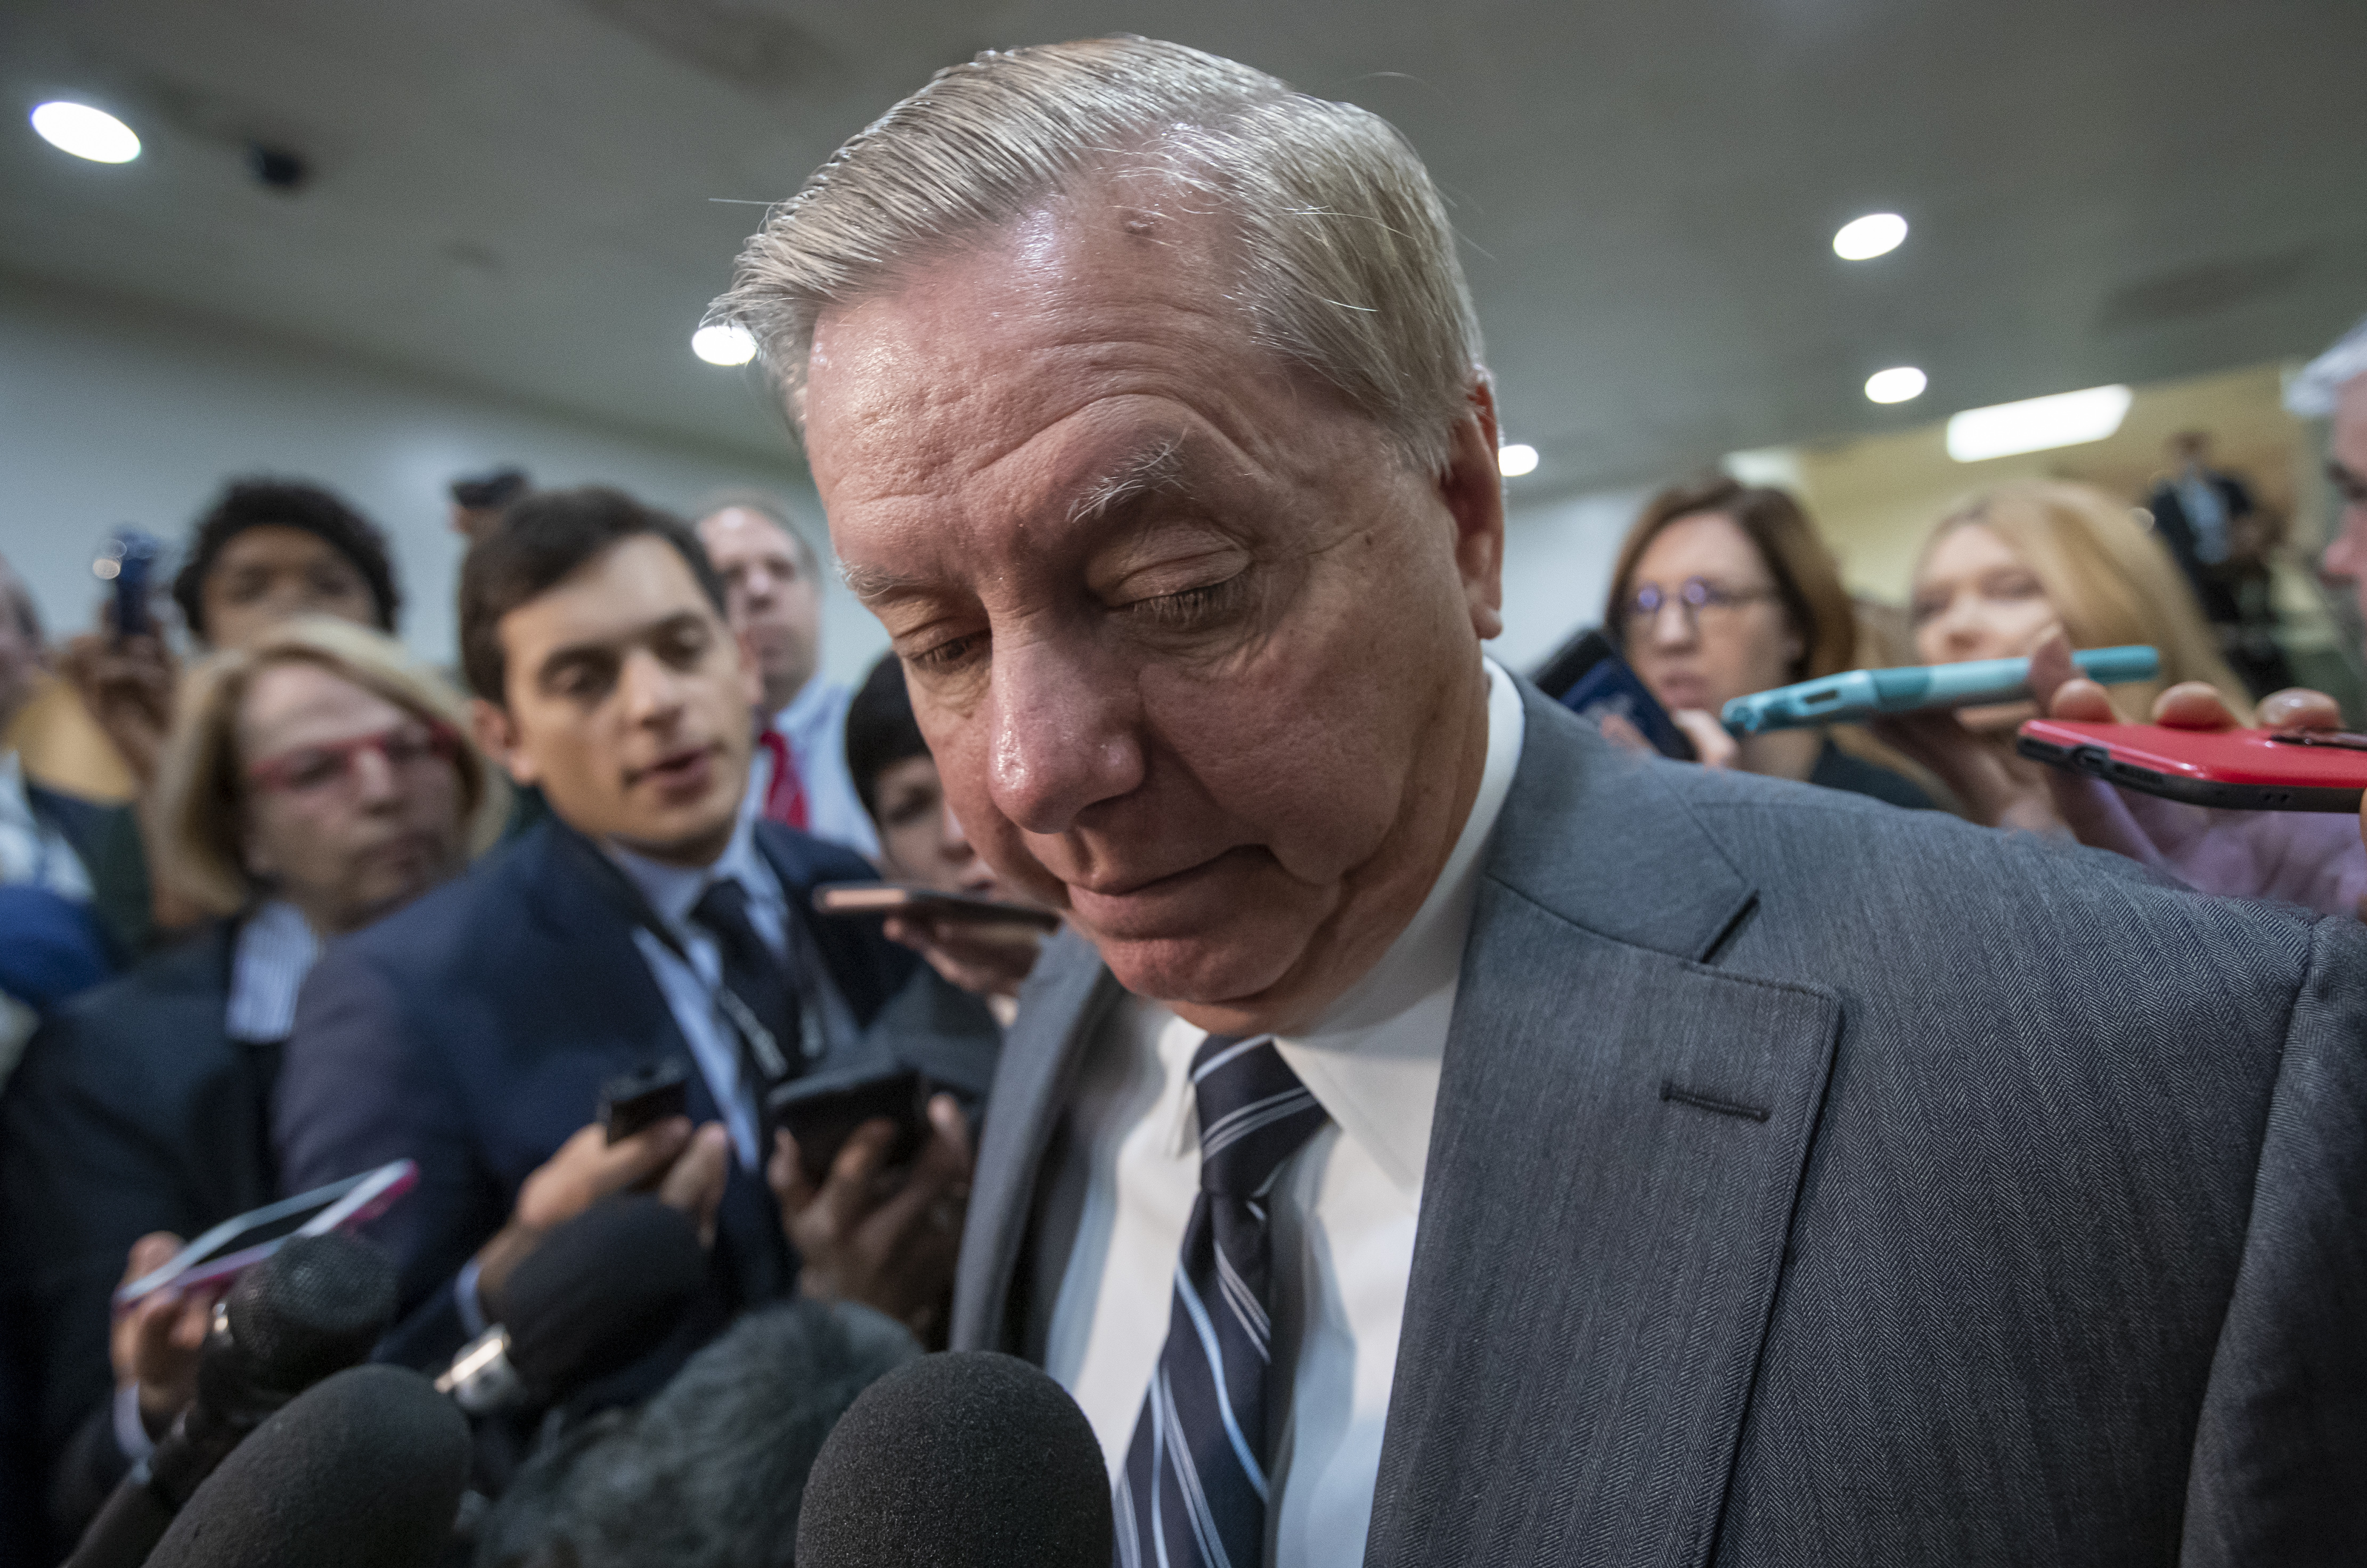 Sen. Lindsey Graham, R-S.C., chairman of the Subcommittee on Crime and Terrorism, pauses as he speaks to reporters after a closed-door security briefing by CIA Director Gina Haspel on the slaying of Saudi journalist Jamal Khashoggi and involvement of the Saudi crown prince, Mohammed bin Salman, at the Capitol in Washington, Tuesday, Dec. 4, 2018. Graham said there is